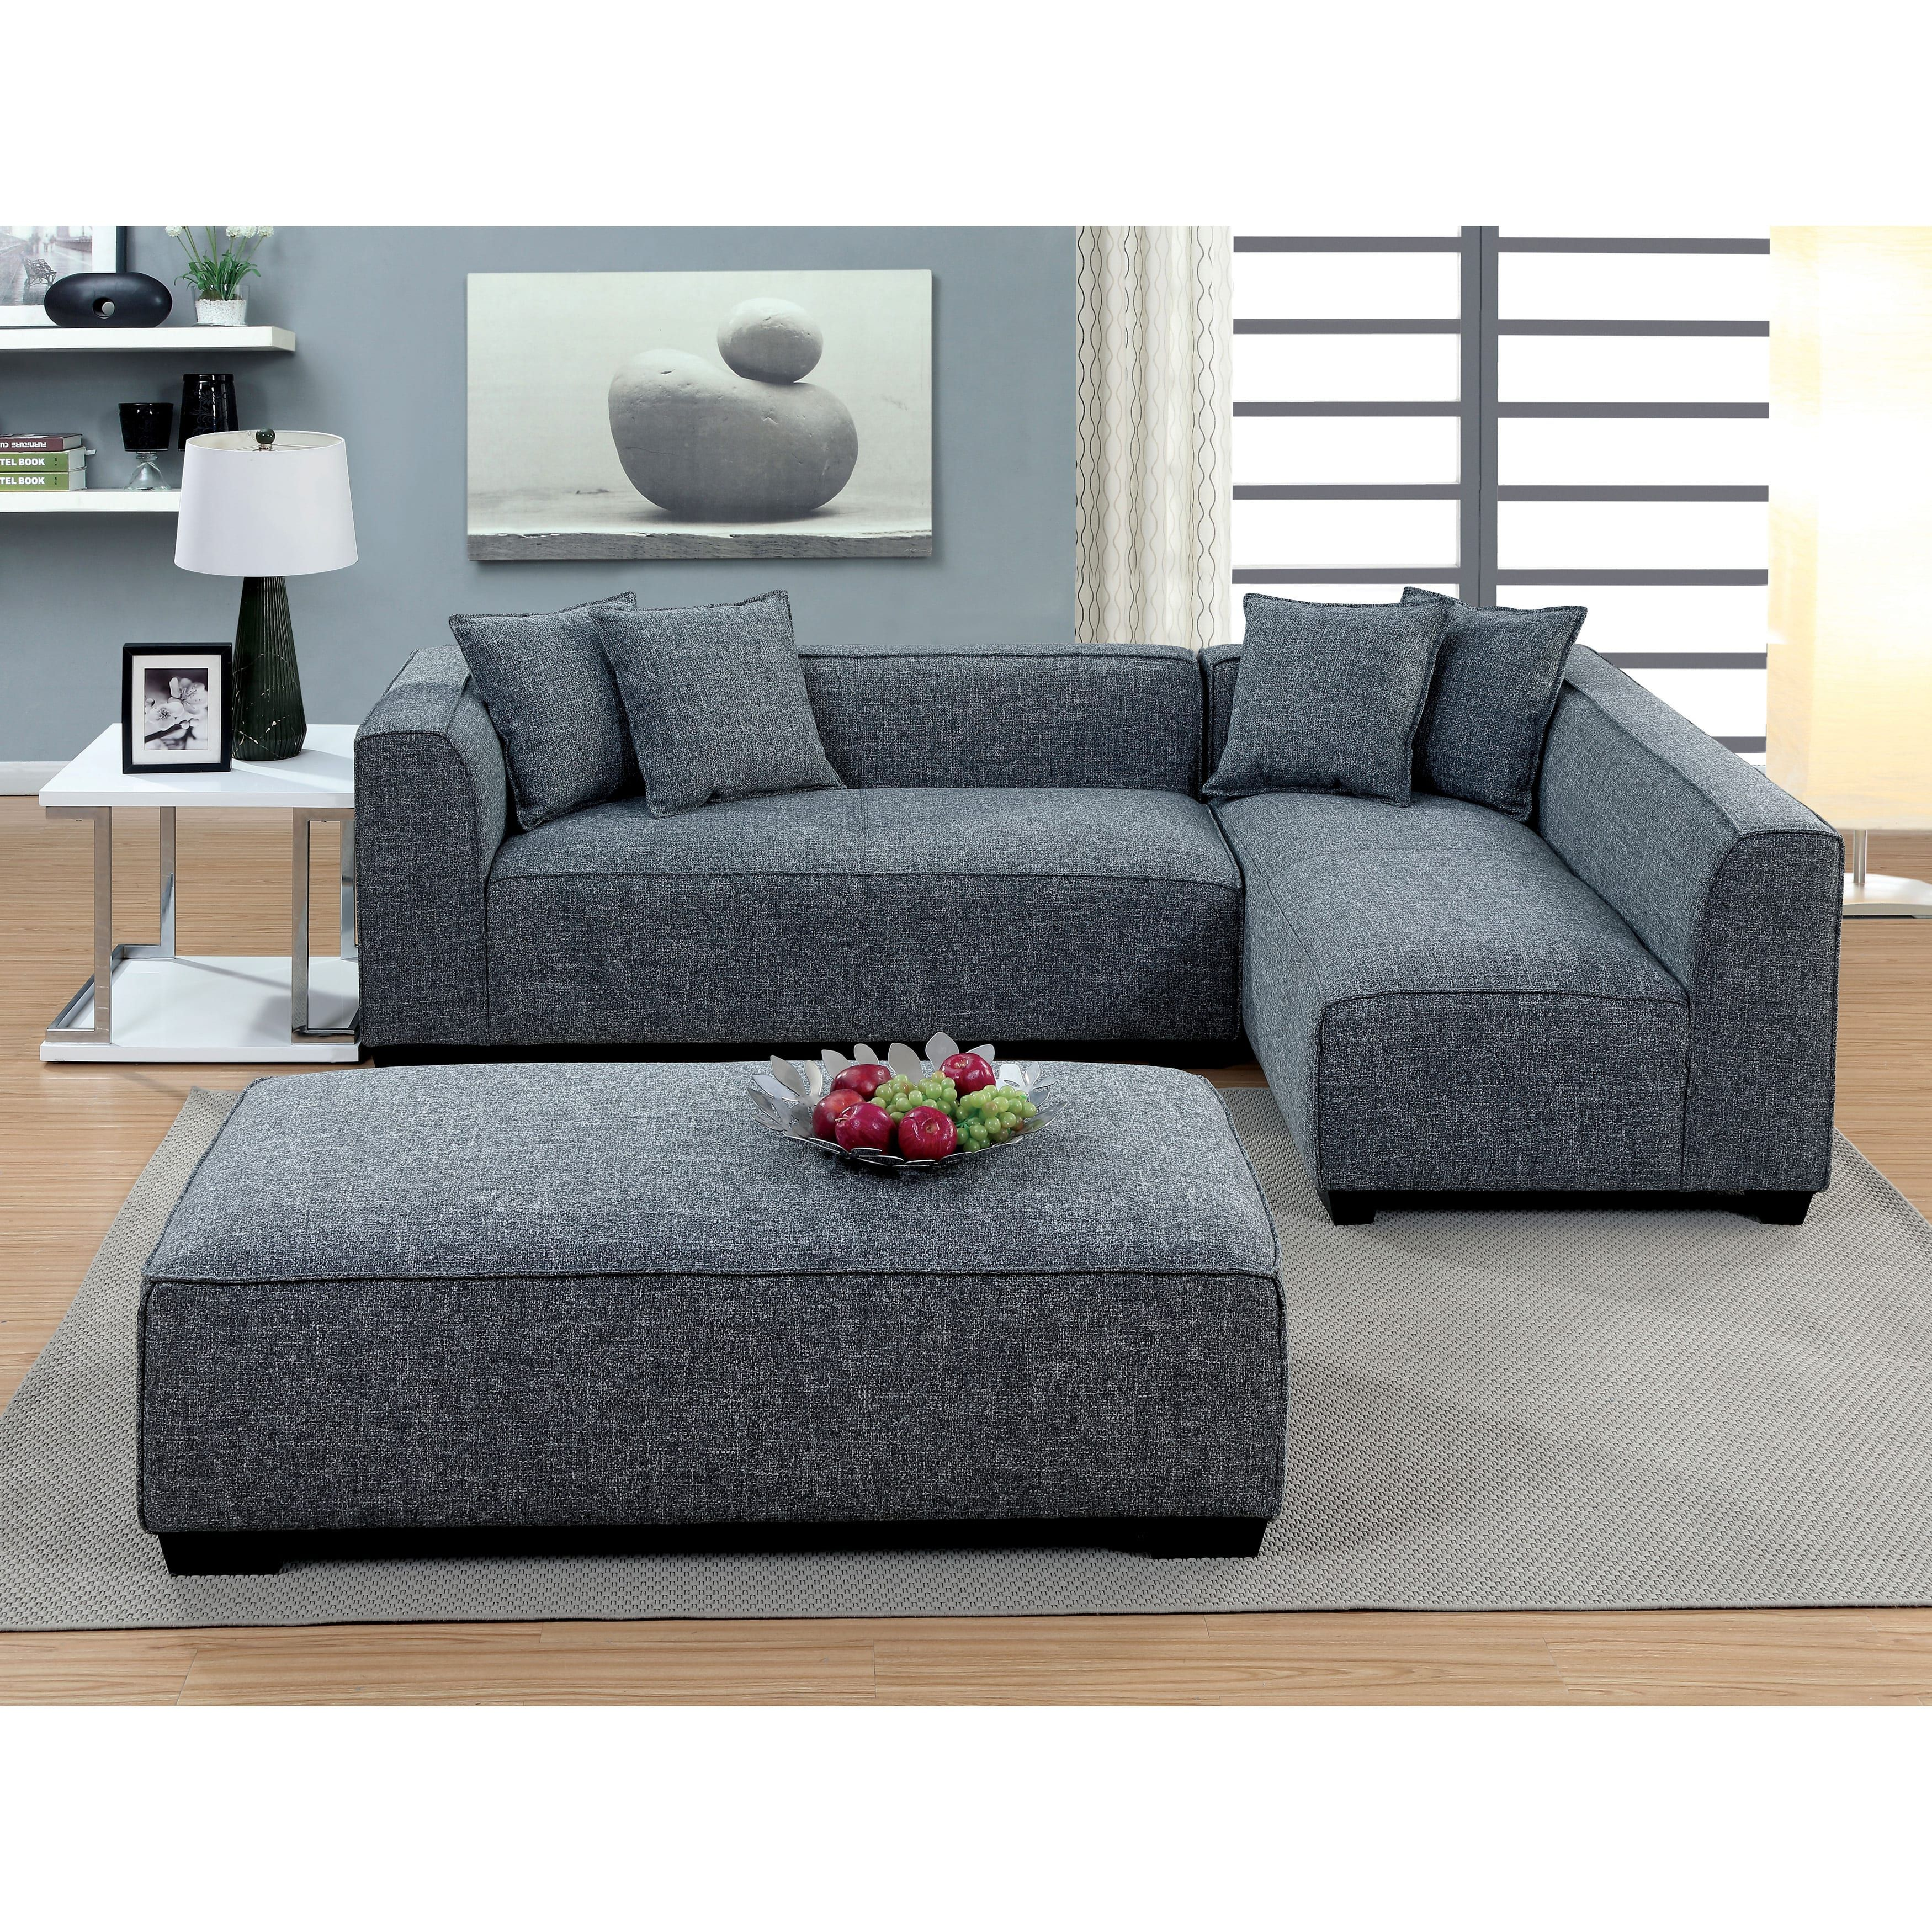 Overstock Com Online Shopping Bedding Furniture Electronics Jewelry Clothing More Contemporary Sectional Sofa Fabric Sectional Sofas Sectional Sofa